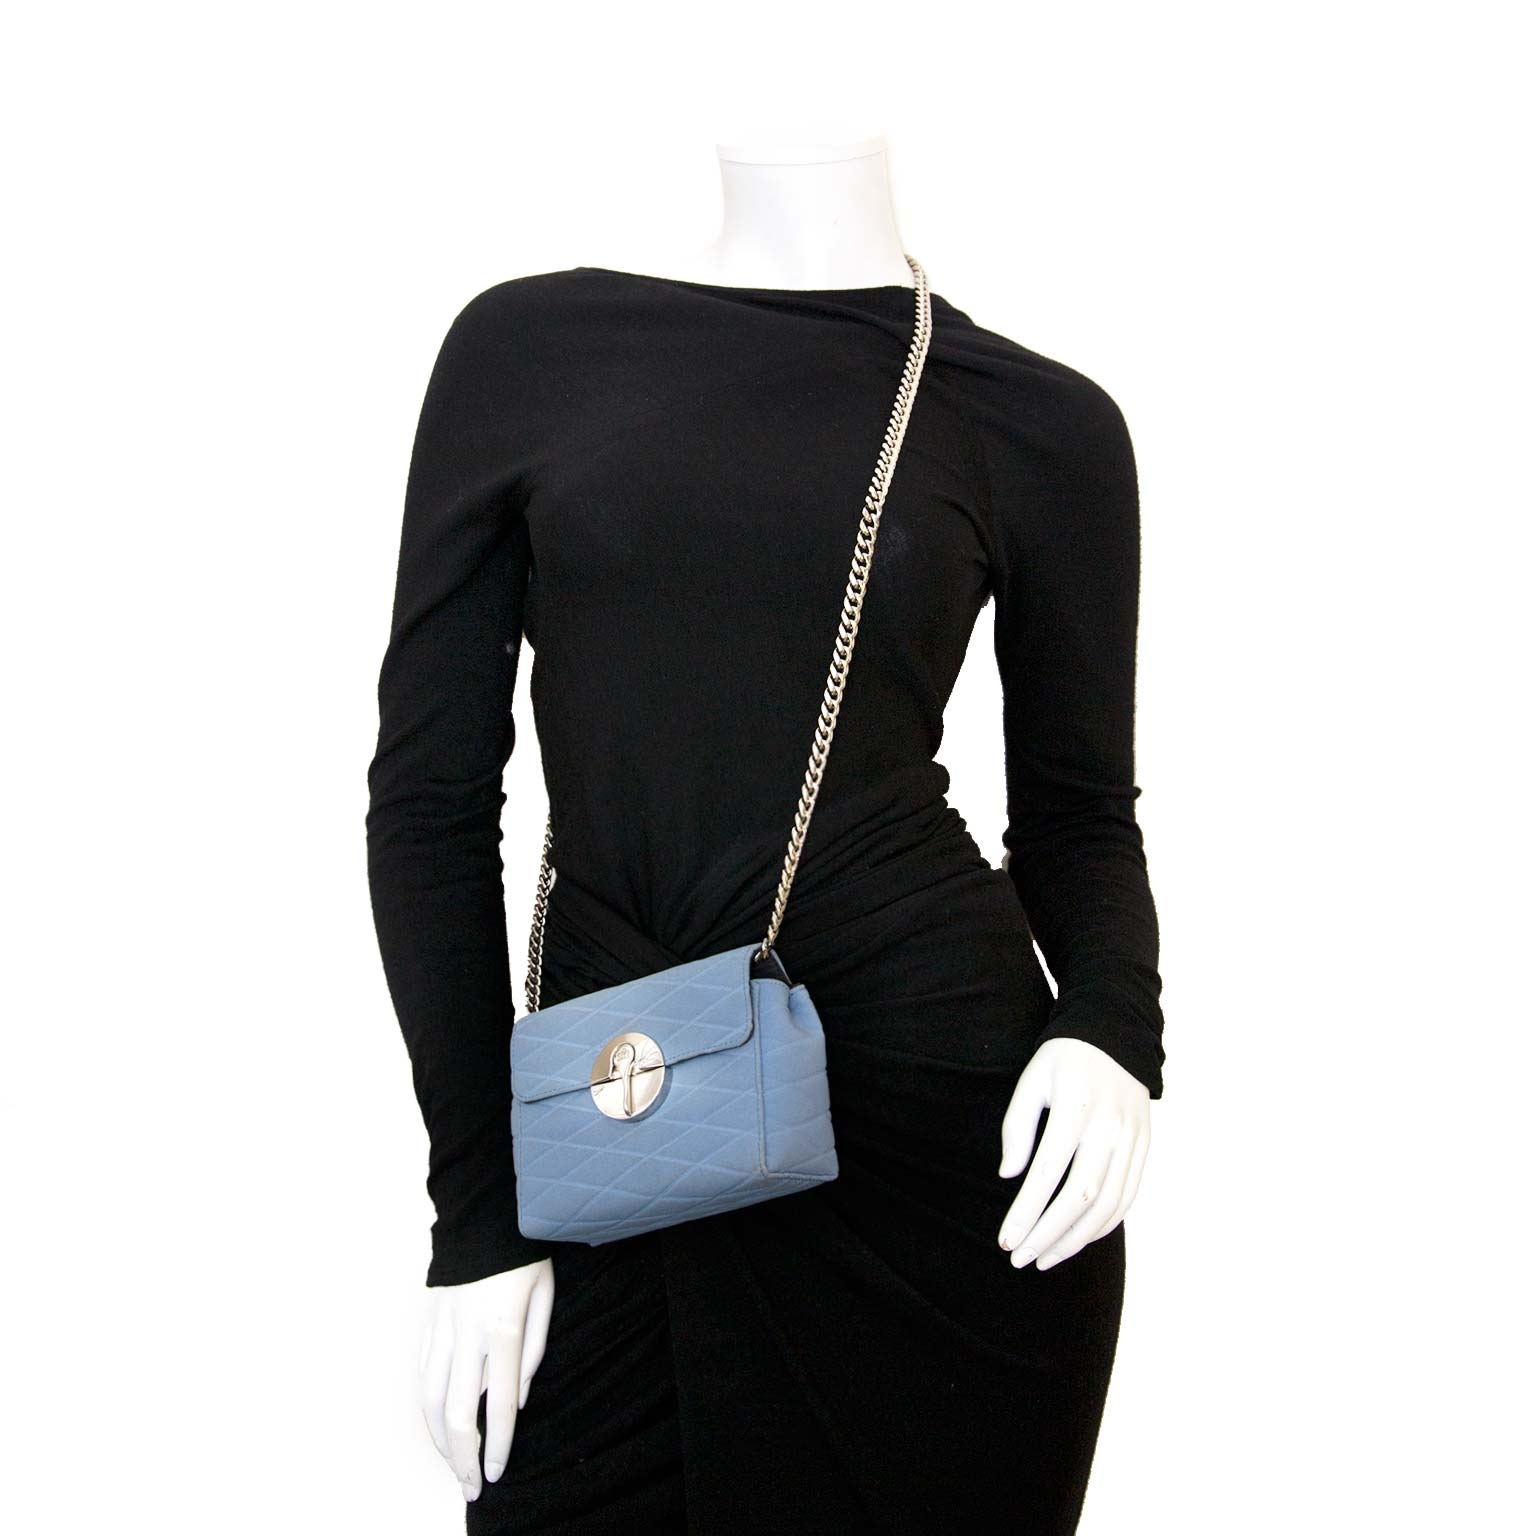 Koop tweedehands Lebeau Buy secondhand Lebeau-Courally handbag at Labellov.  Safe online shopping. Koop tweedehands Lebeau f98db07efab3d